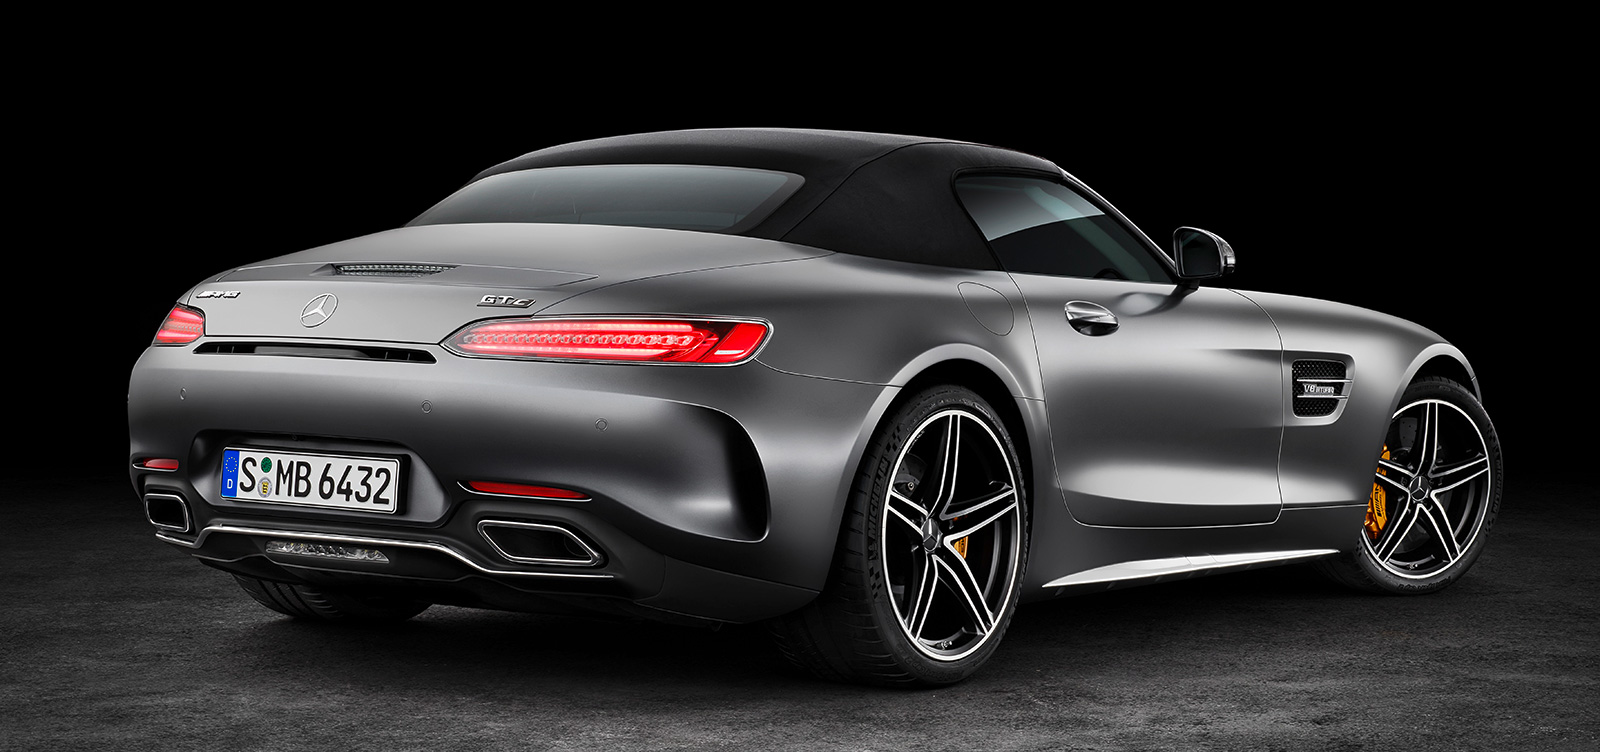 mercedes amg gt c roadster 557 hp 680 nm convertible with goodies from the gt r image 549170. Black Bedroom Furniture Sets. Home Design Ideas